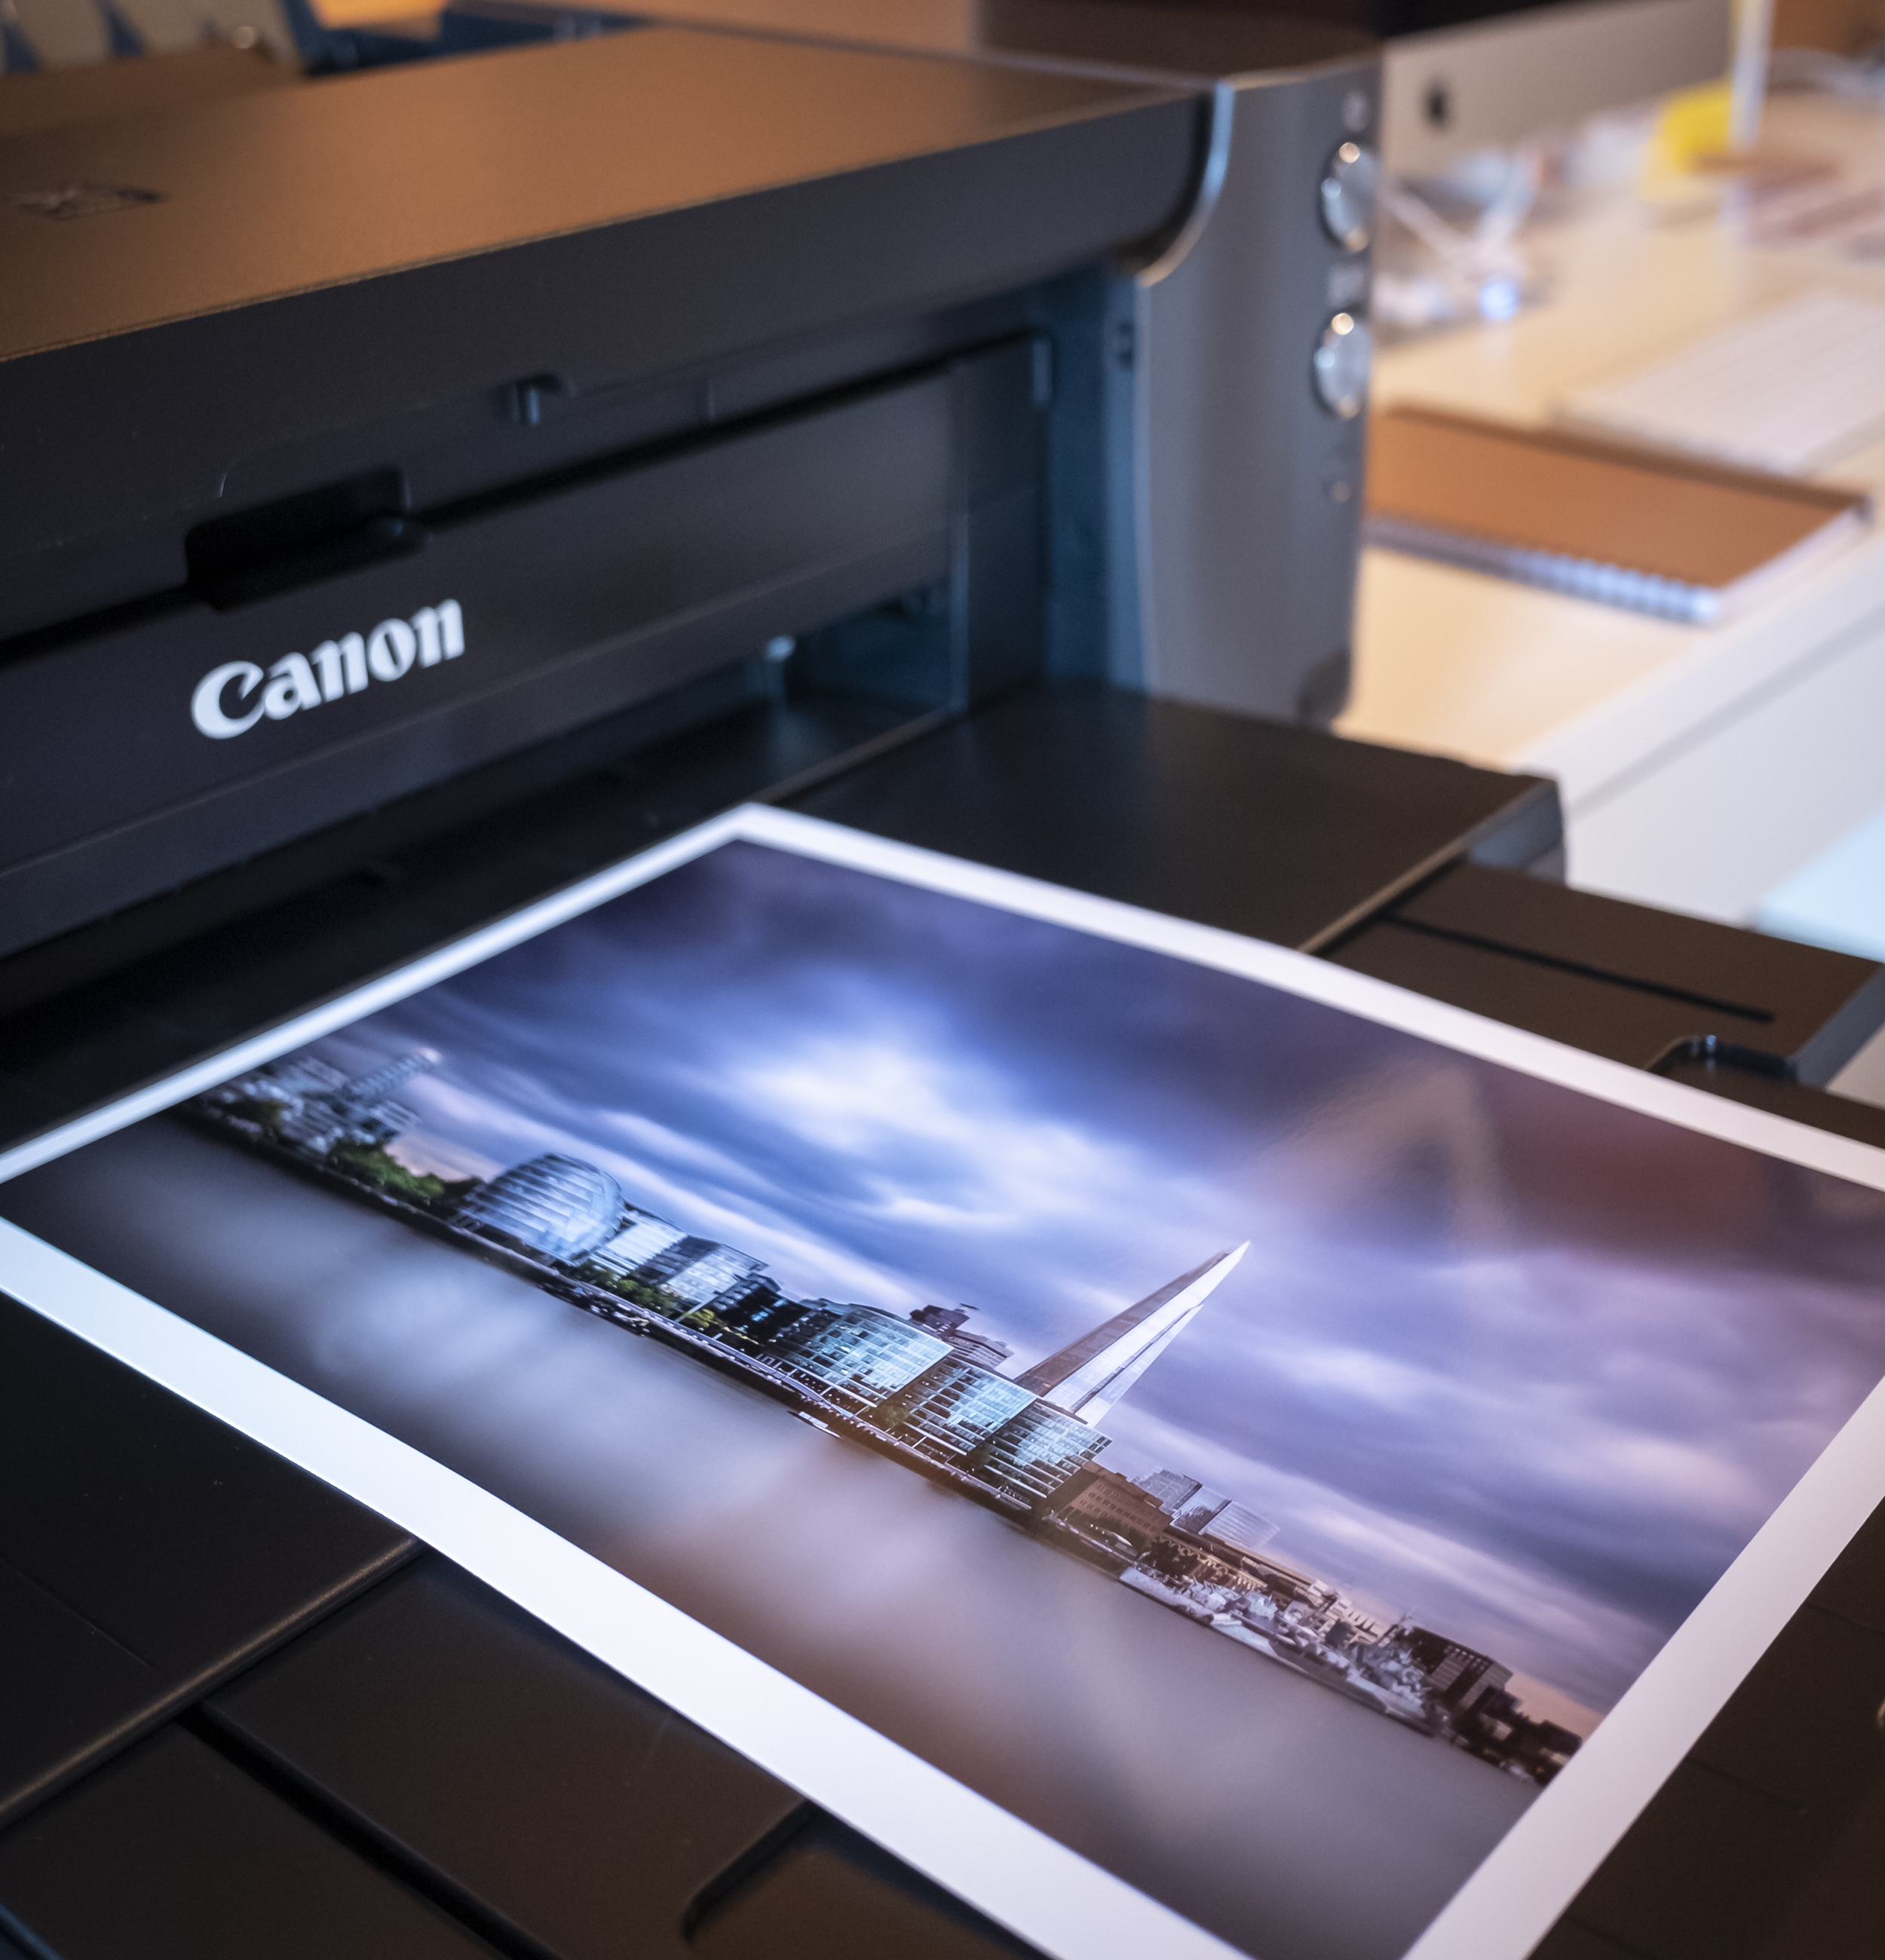 Photo of the printed image on the printer